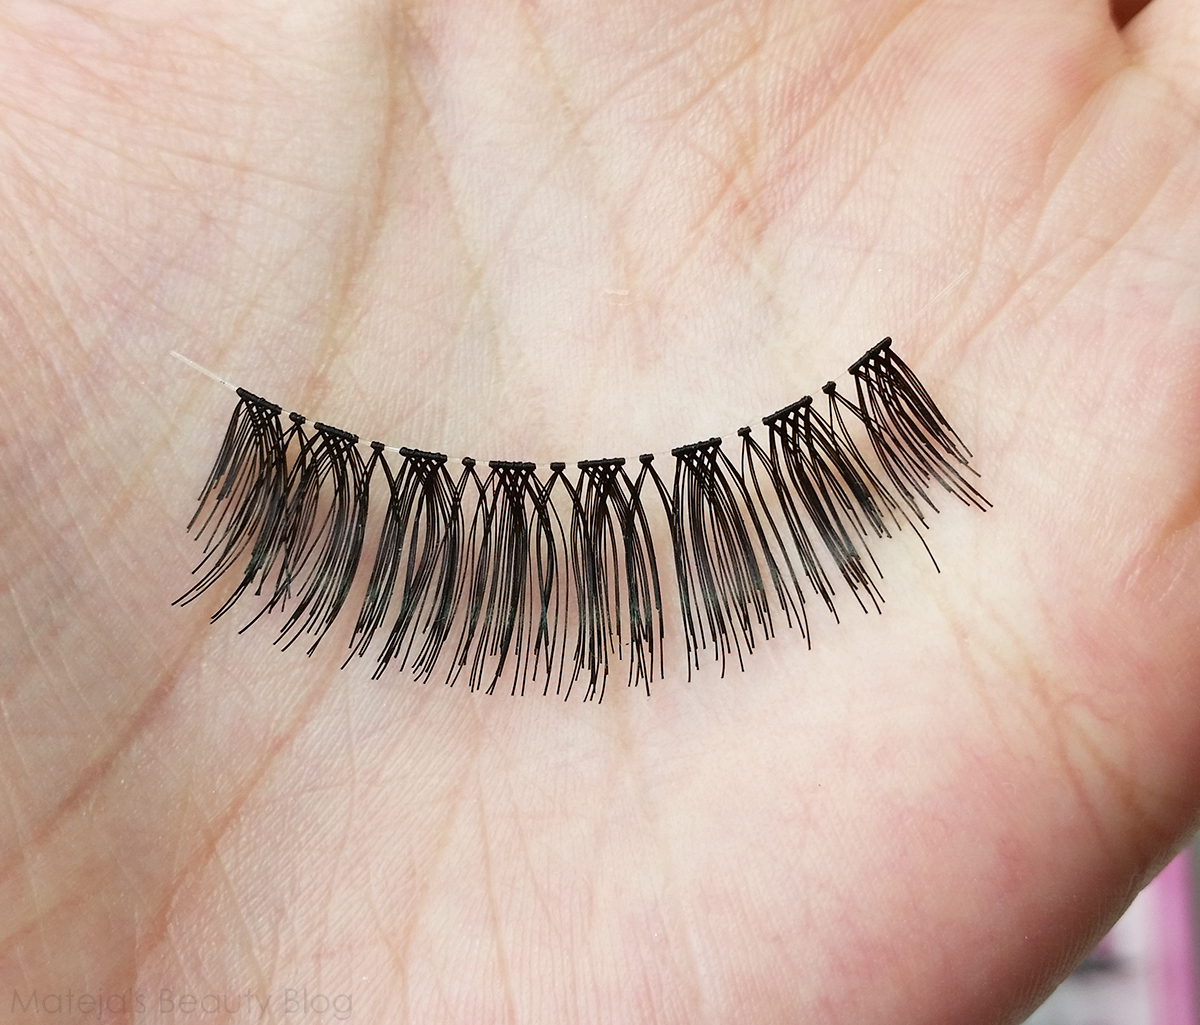 89a3707a0d3 ... lashes, but I still like to wear one (I'm not wearing liner in any of  the pictures). I can feel these on the eyes, which is not surprising  considering ...